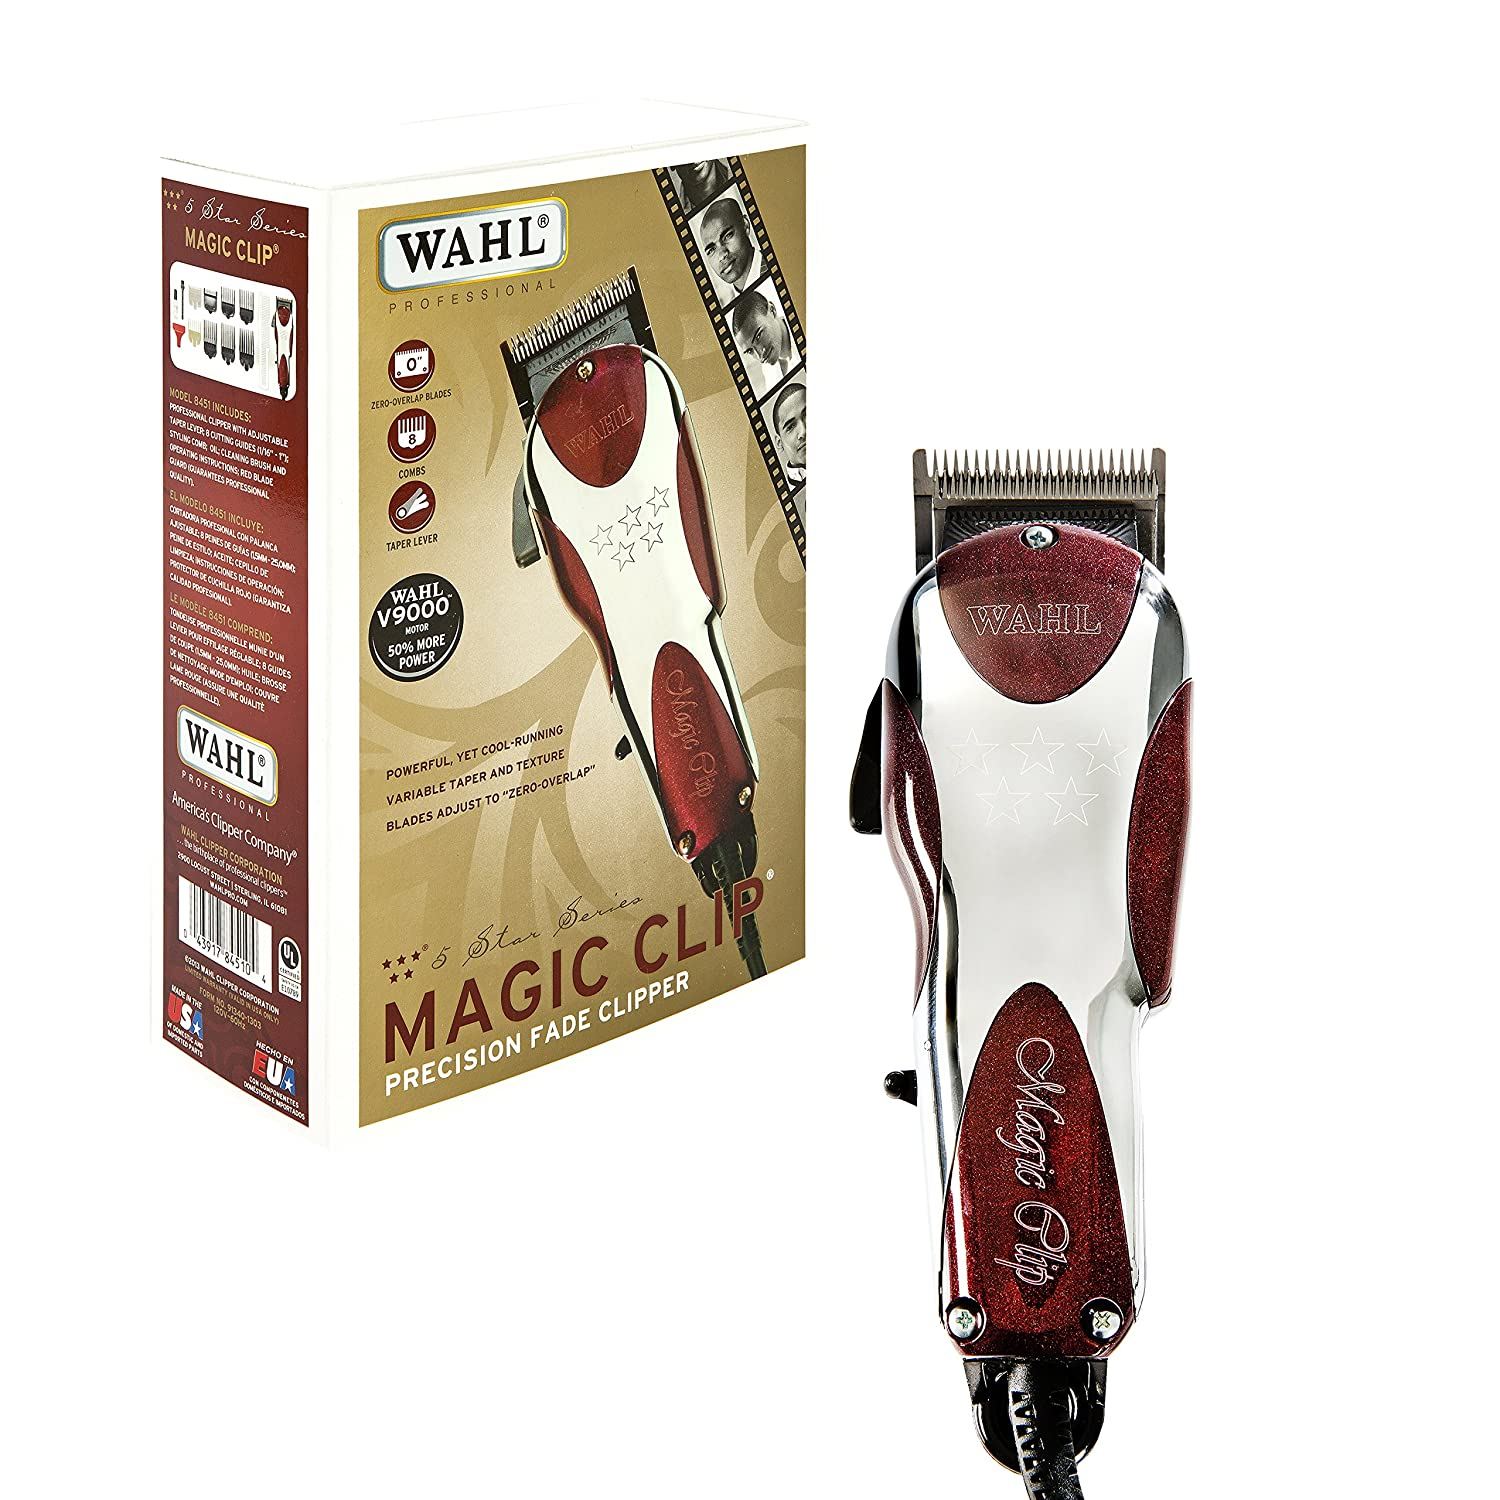 Wahl Professional 5-Star Magic Clip #8451 – Great for Barbers and Stylists – Precision Fade Clipper with Zero Overlap Adjustable Blades, V9000 Cool-Running Motor, Variable Taper and Texture Settings WA8451